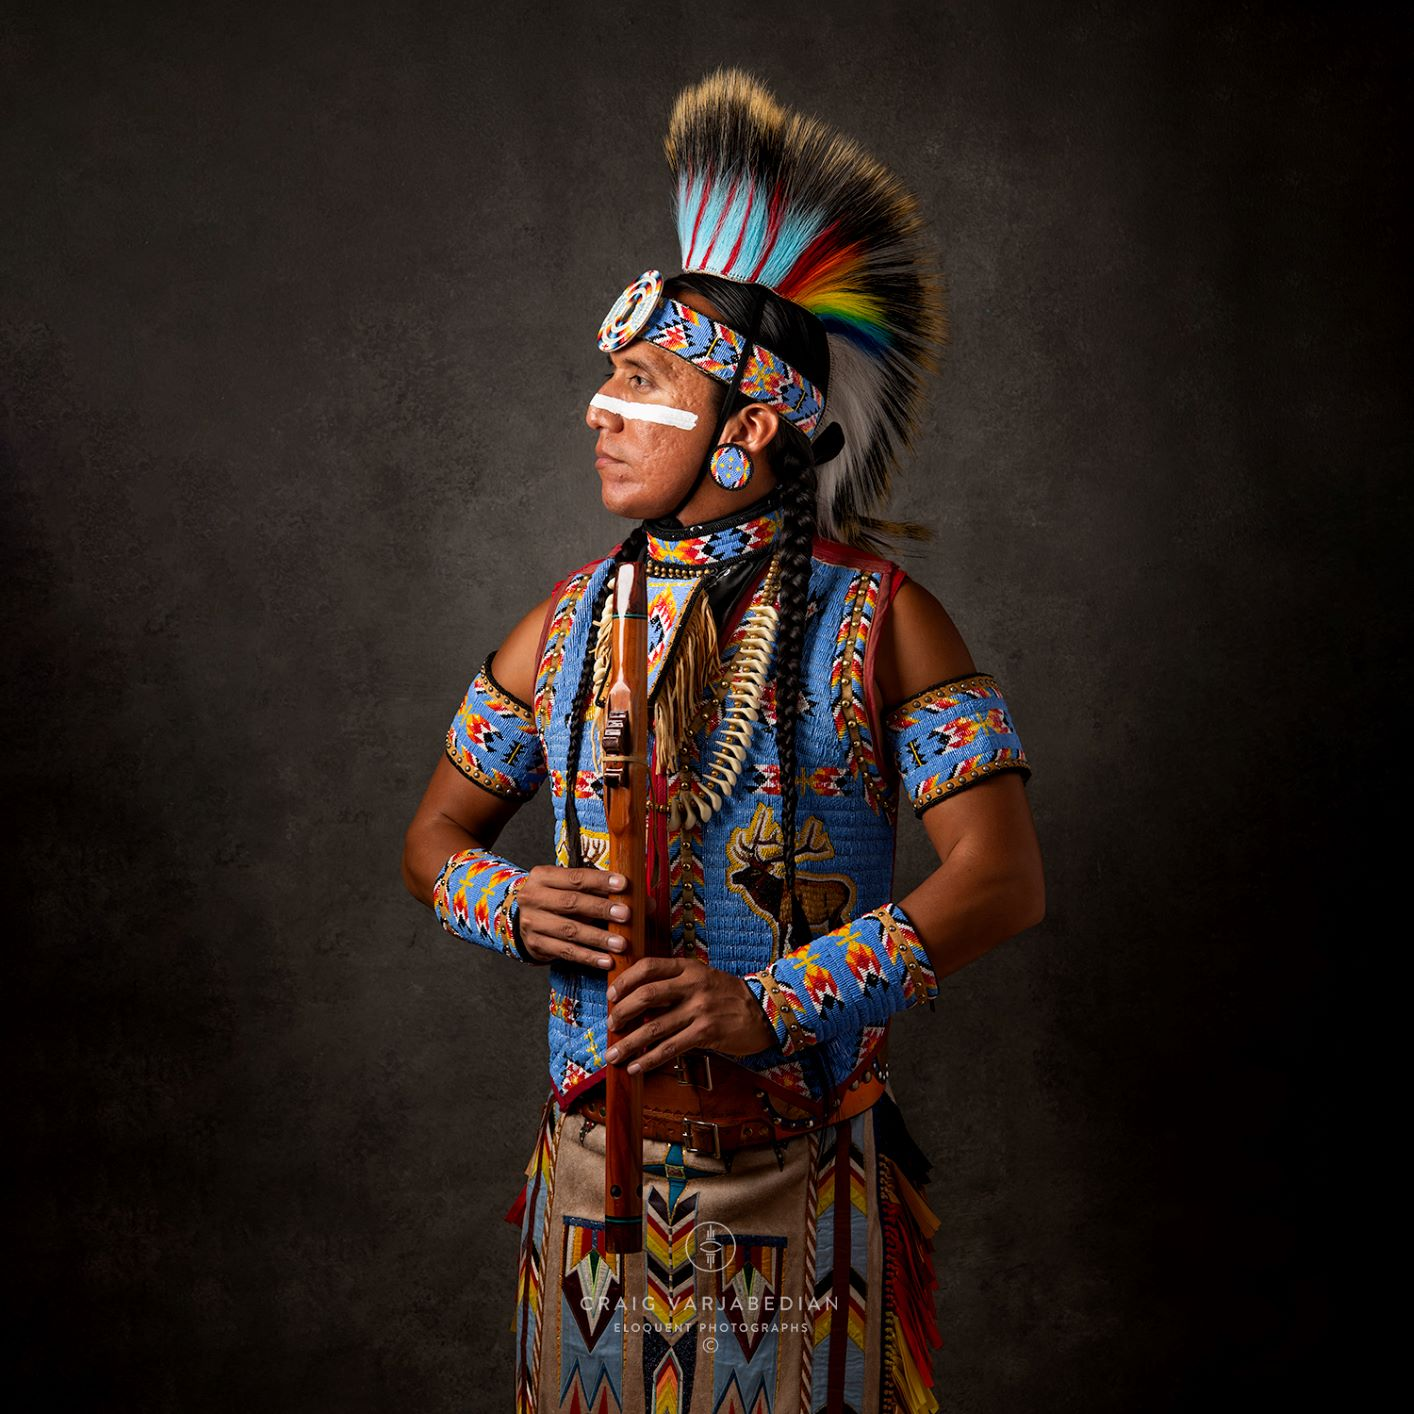 Man in traditional Native garb including beaded and feather headress stands in profile holding wooden flute